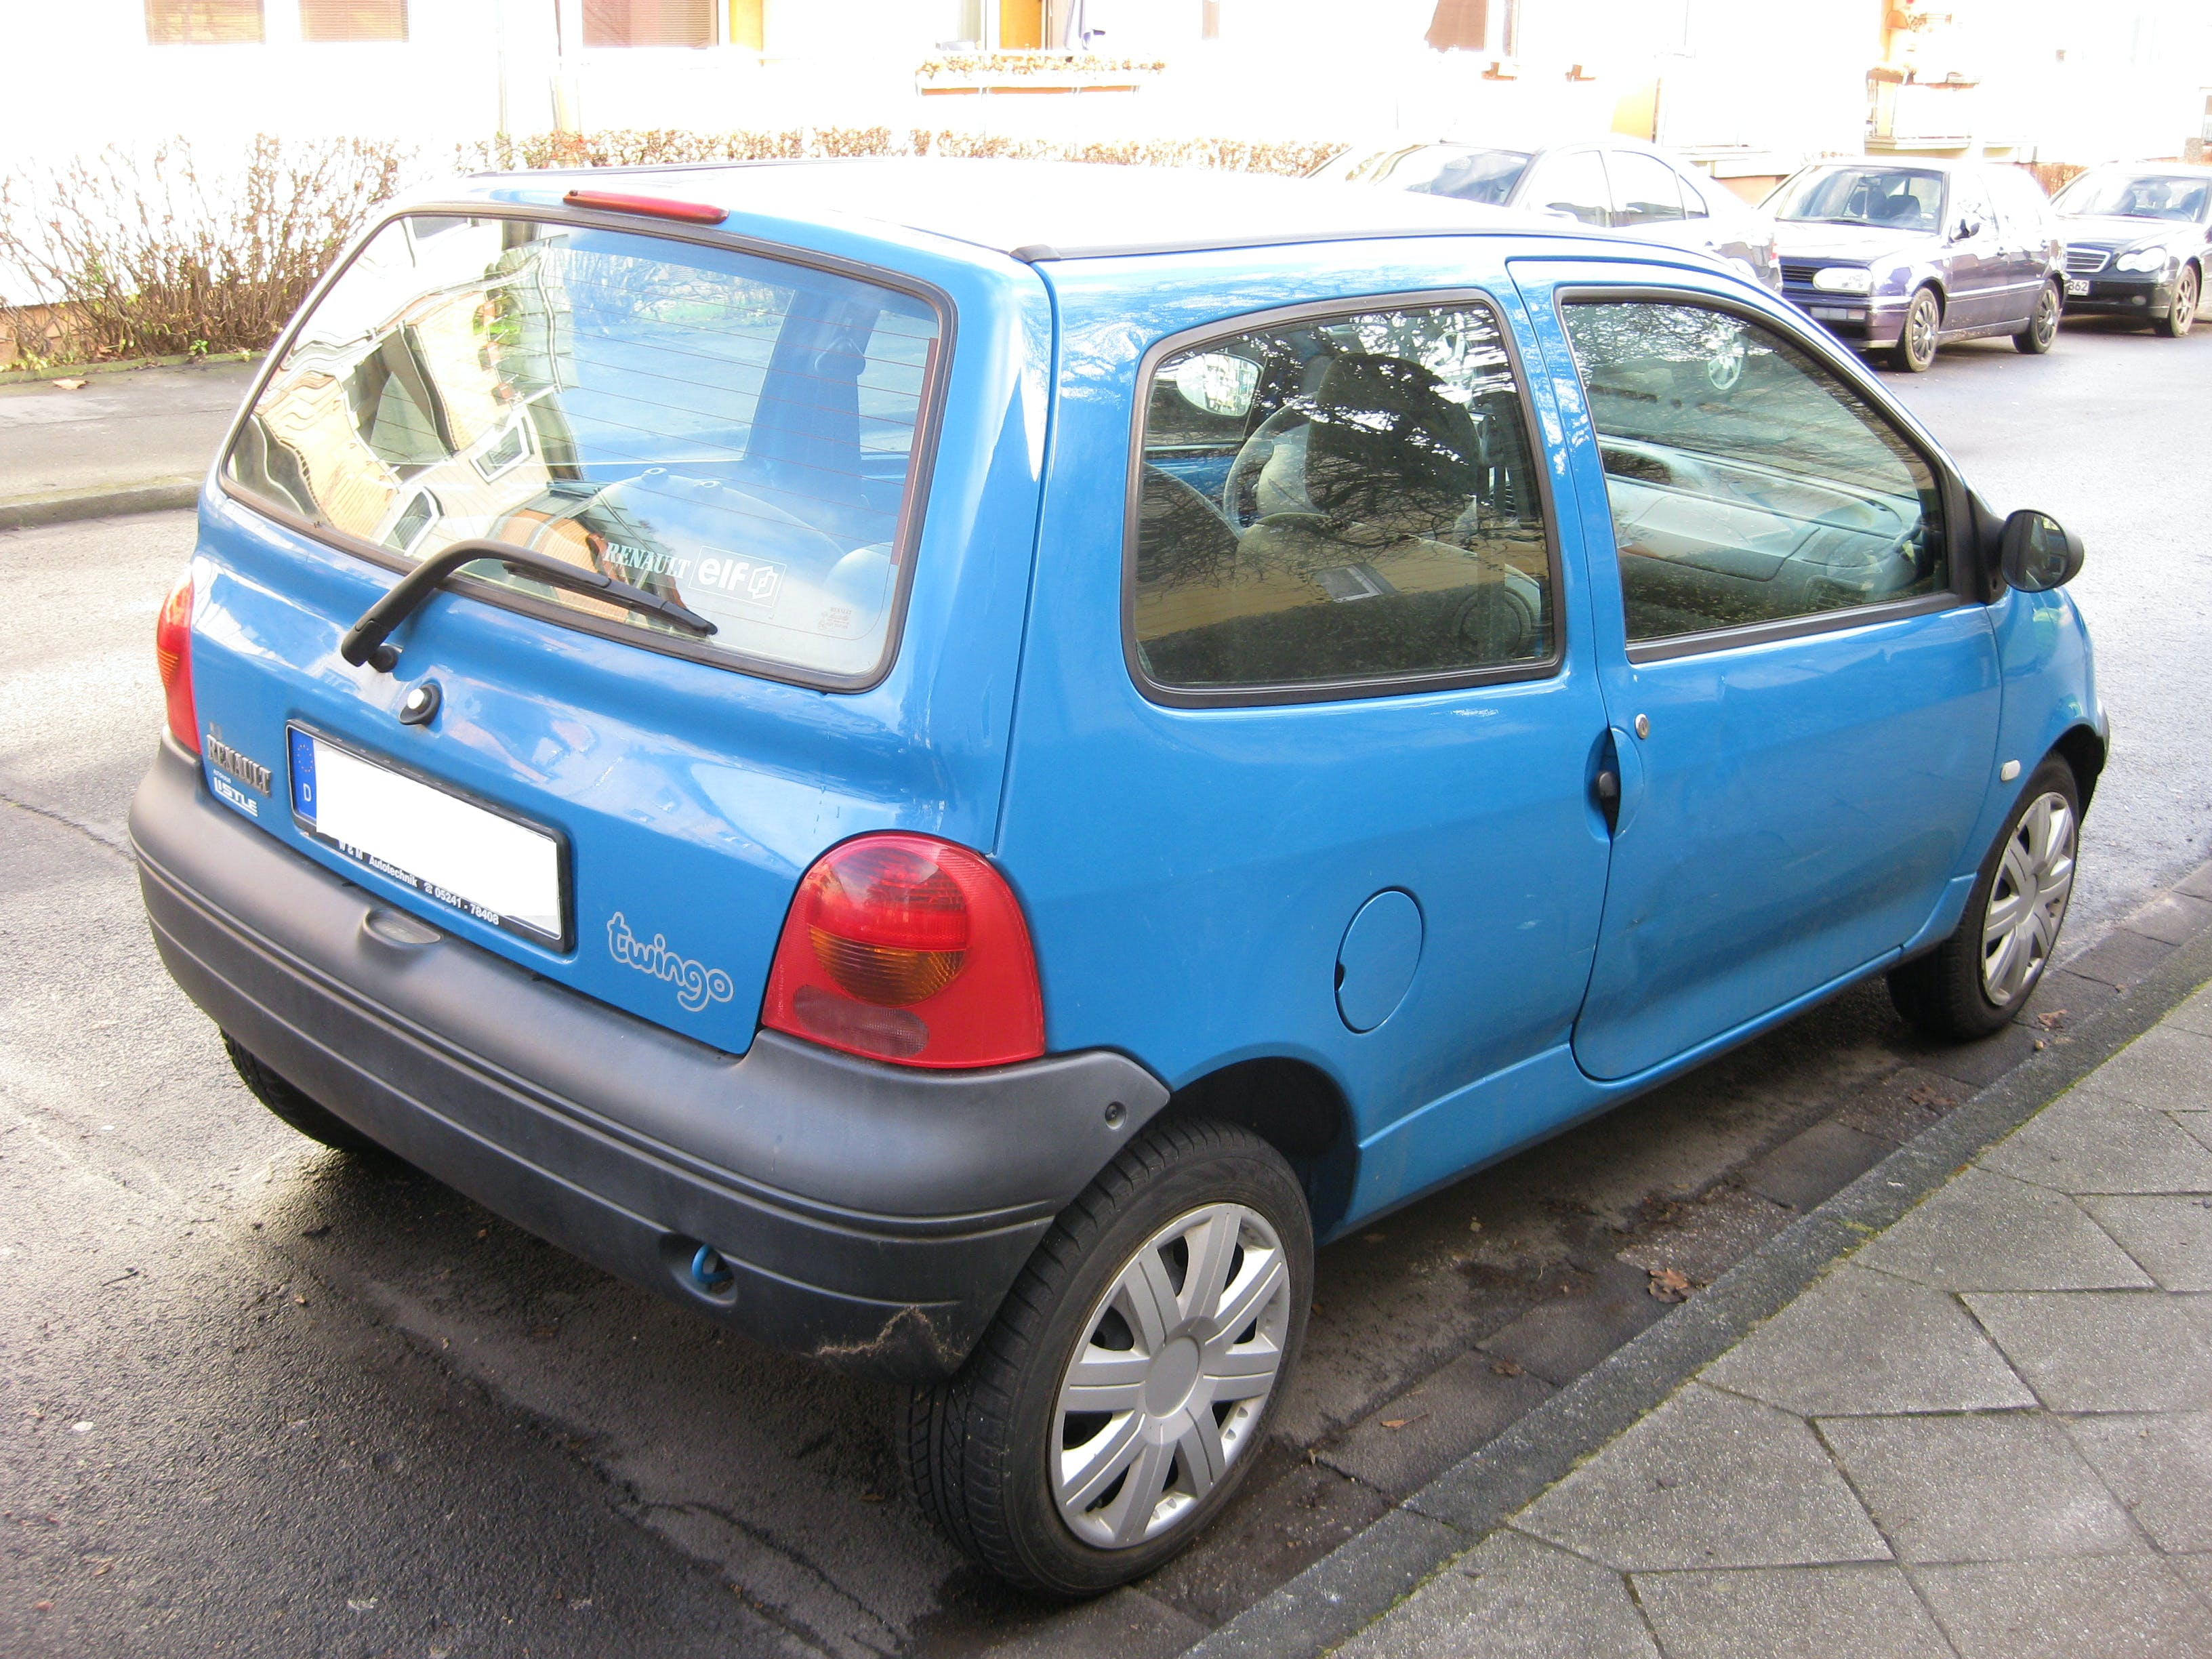 Renault Twingo mit CD-Player